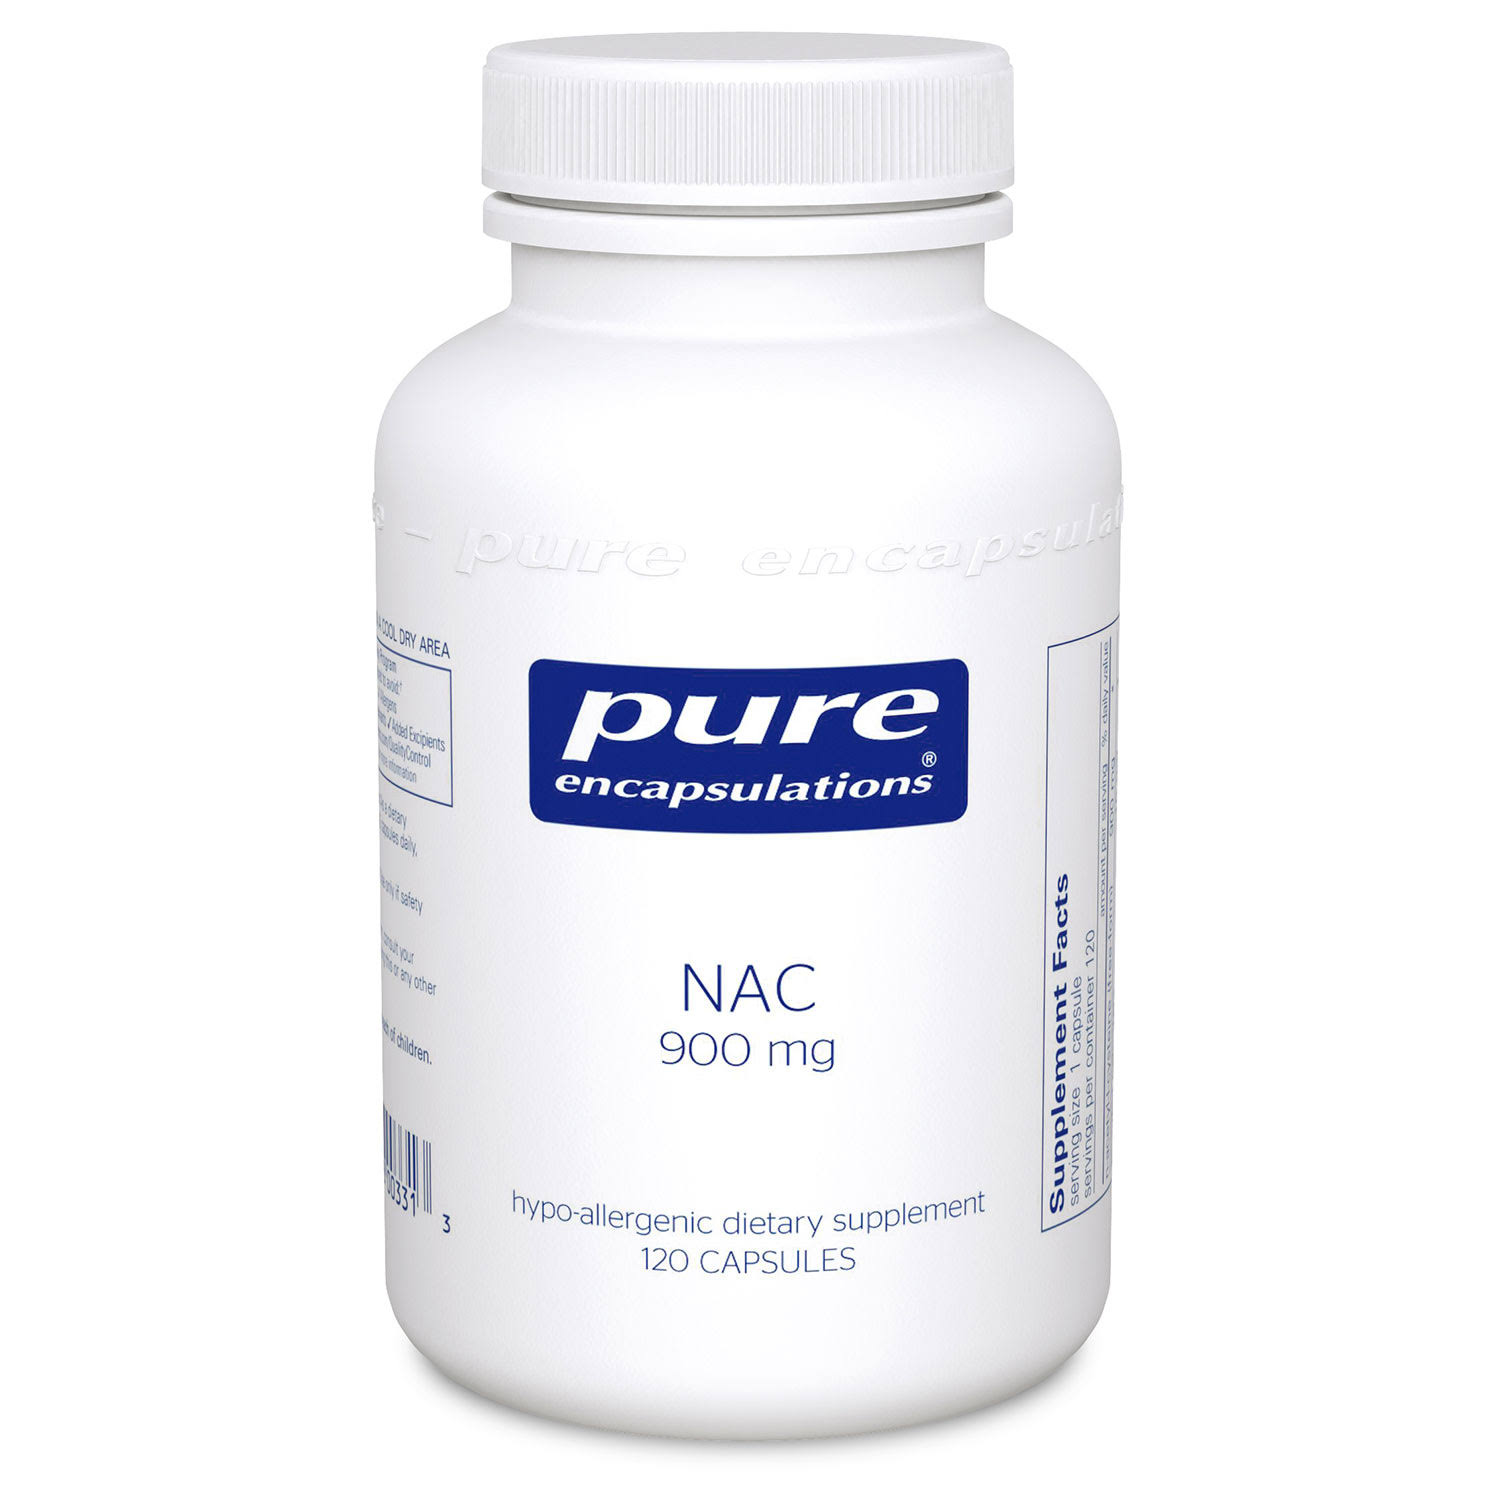 Pure Encapsulations Nac - 120's, 900mg